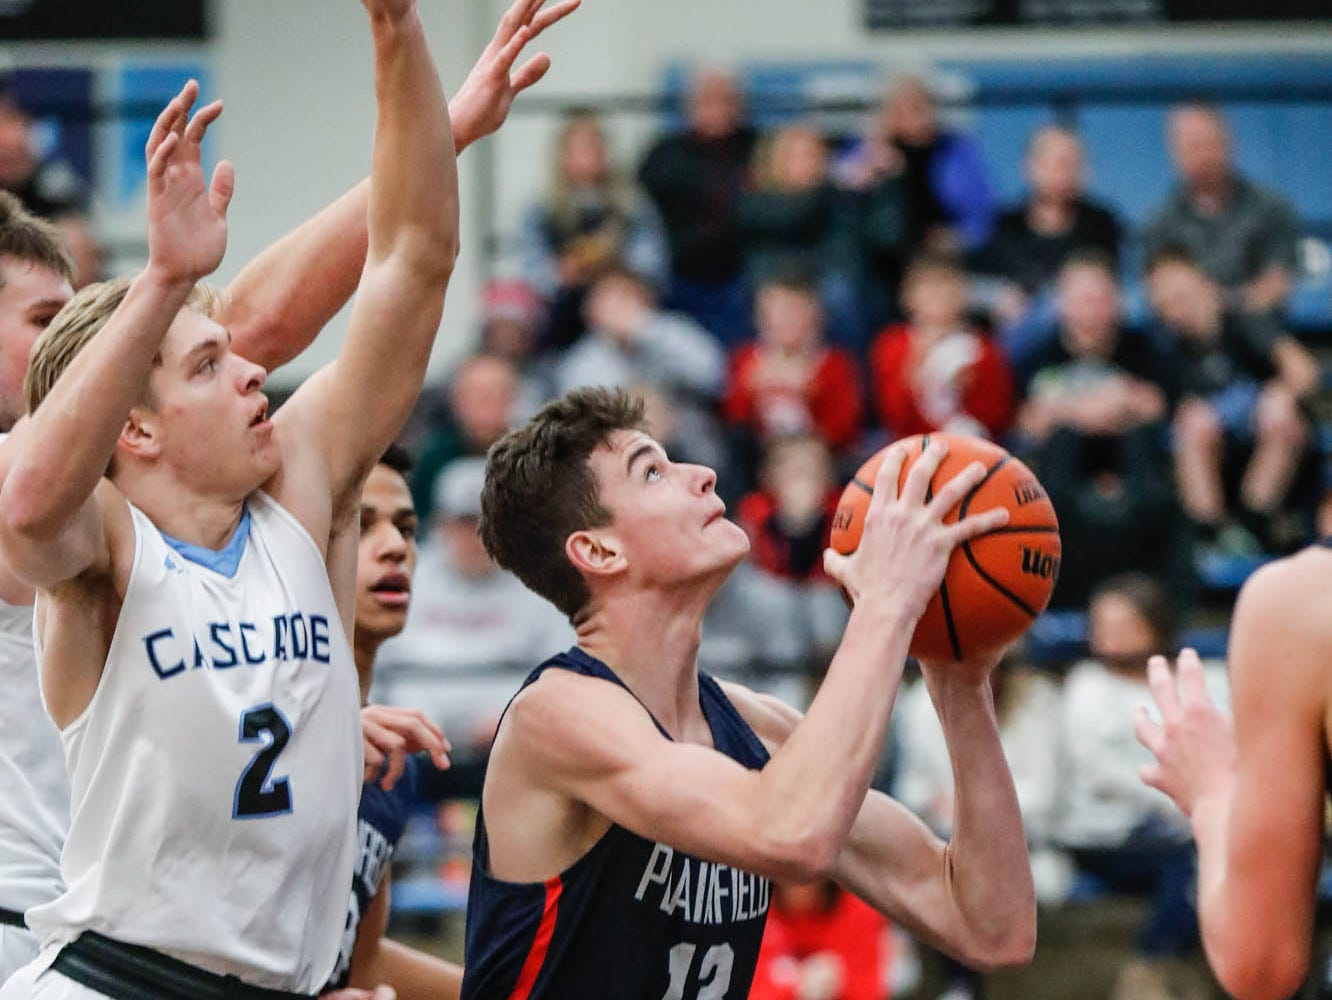 Plainfield High School's forward Ian Scott (13) shoots for the hoop during a 2019 Hendricks County Basketball Tournament game between Plainfield High School and Cascade High School, held at Cascade on Wednesday, Jan. 2, 2019. Cascade High School's A.J. Sanders (2), left.